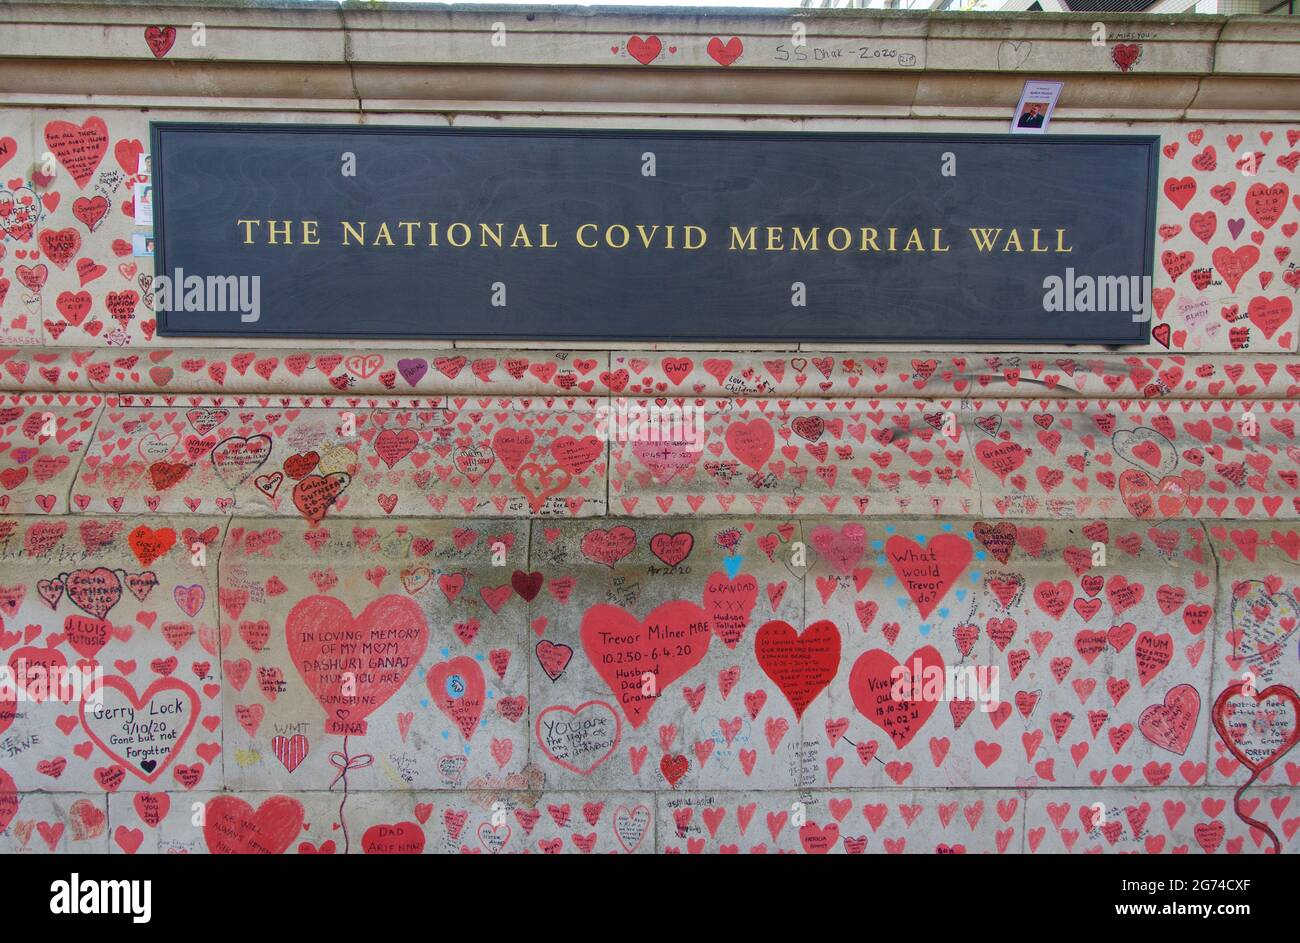 London, England, UK 24.06.2021_The National Covid Memorial Wall in southbank, Lambeth in memory of the covid-19 victims Stock Photo